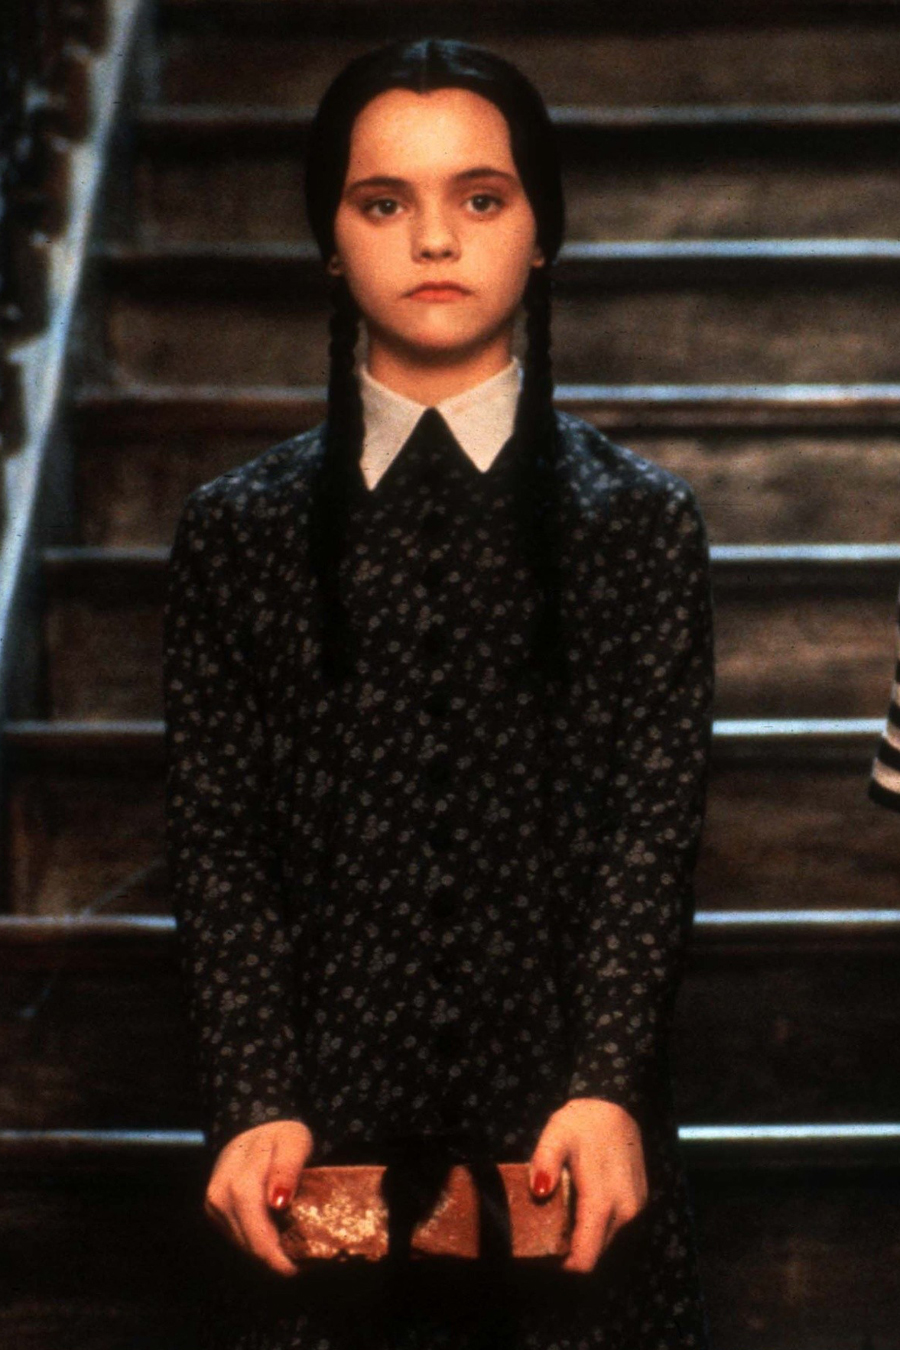 <p>The Shirt Dress: Wednesday Addams</p>